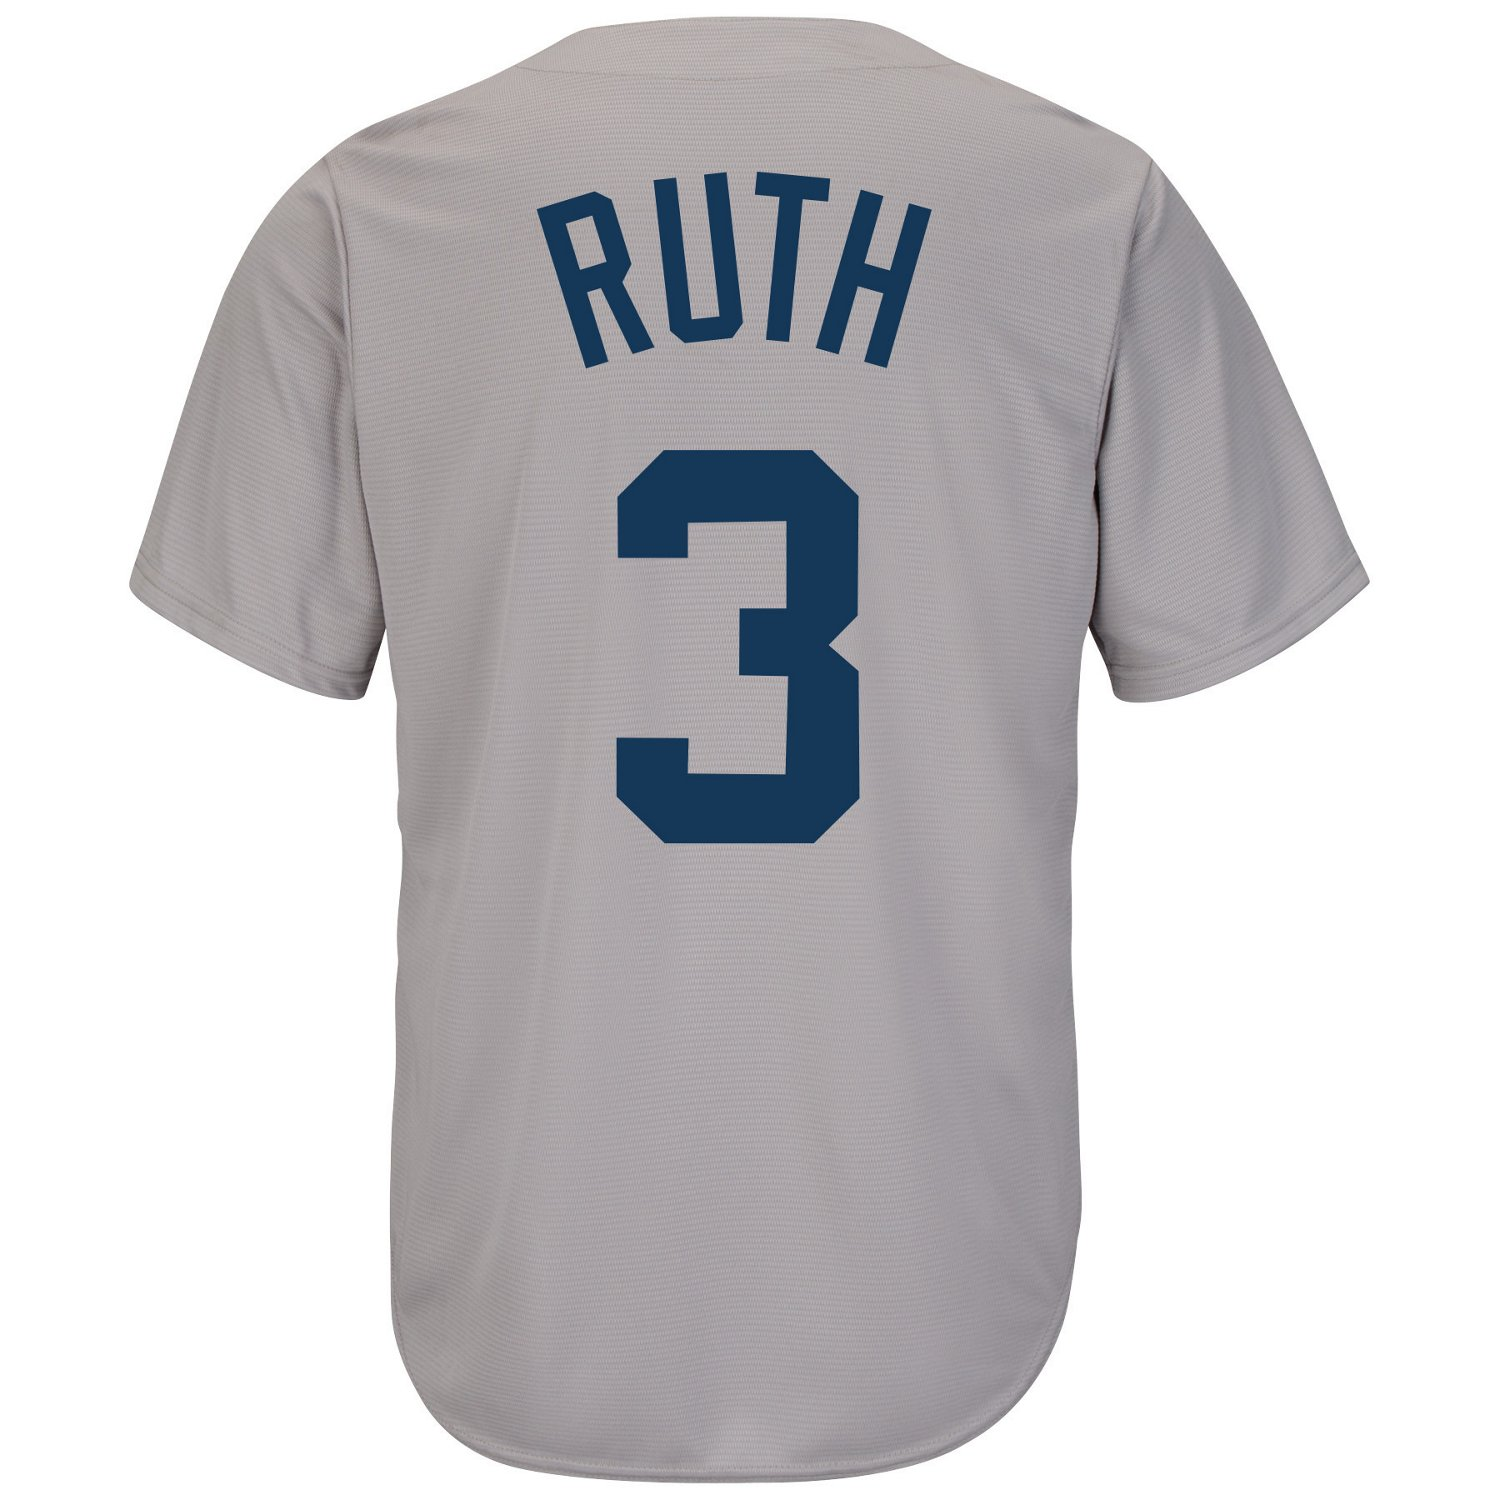 best website 4cabe 5971d Majestic Men's Boston Red Sox Babe Ruth #3 Cooperstown Cool Base 1969  Replica Jersey